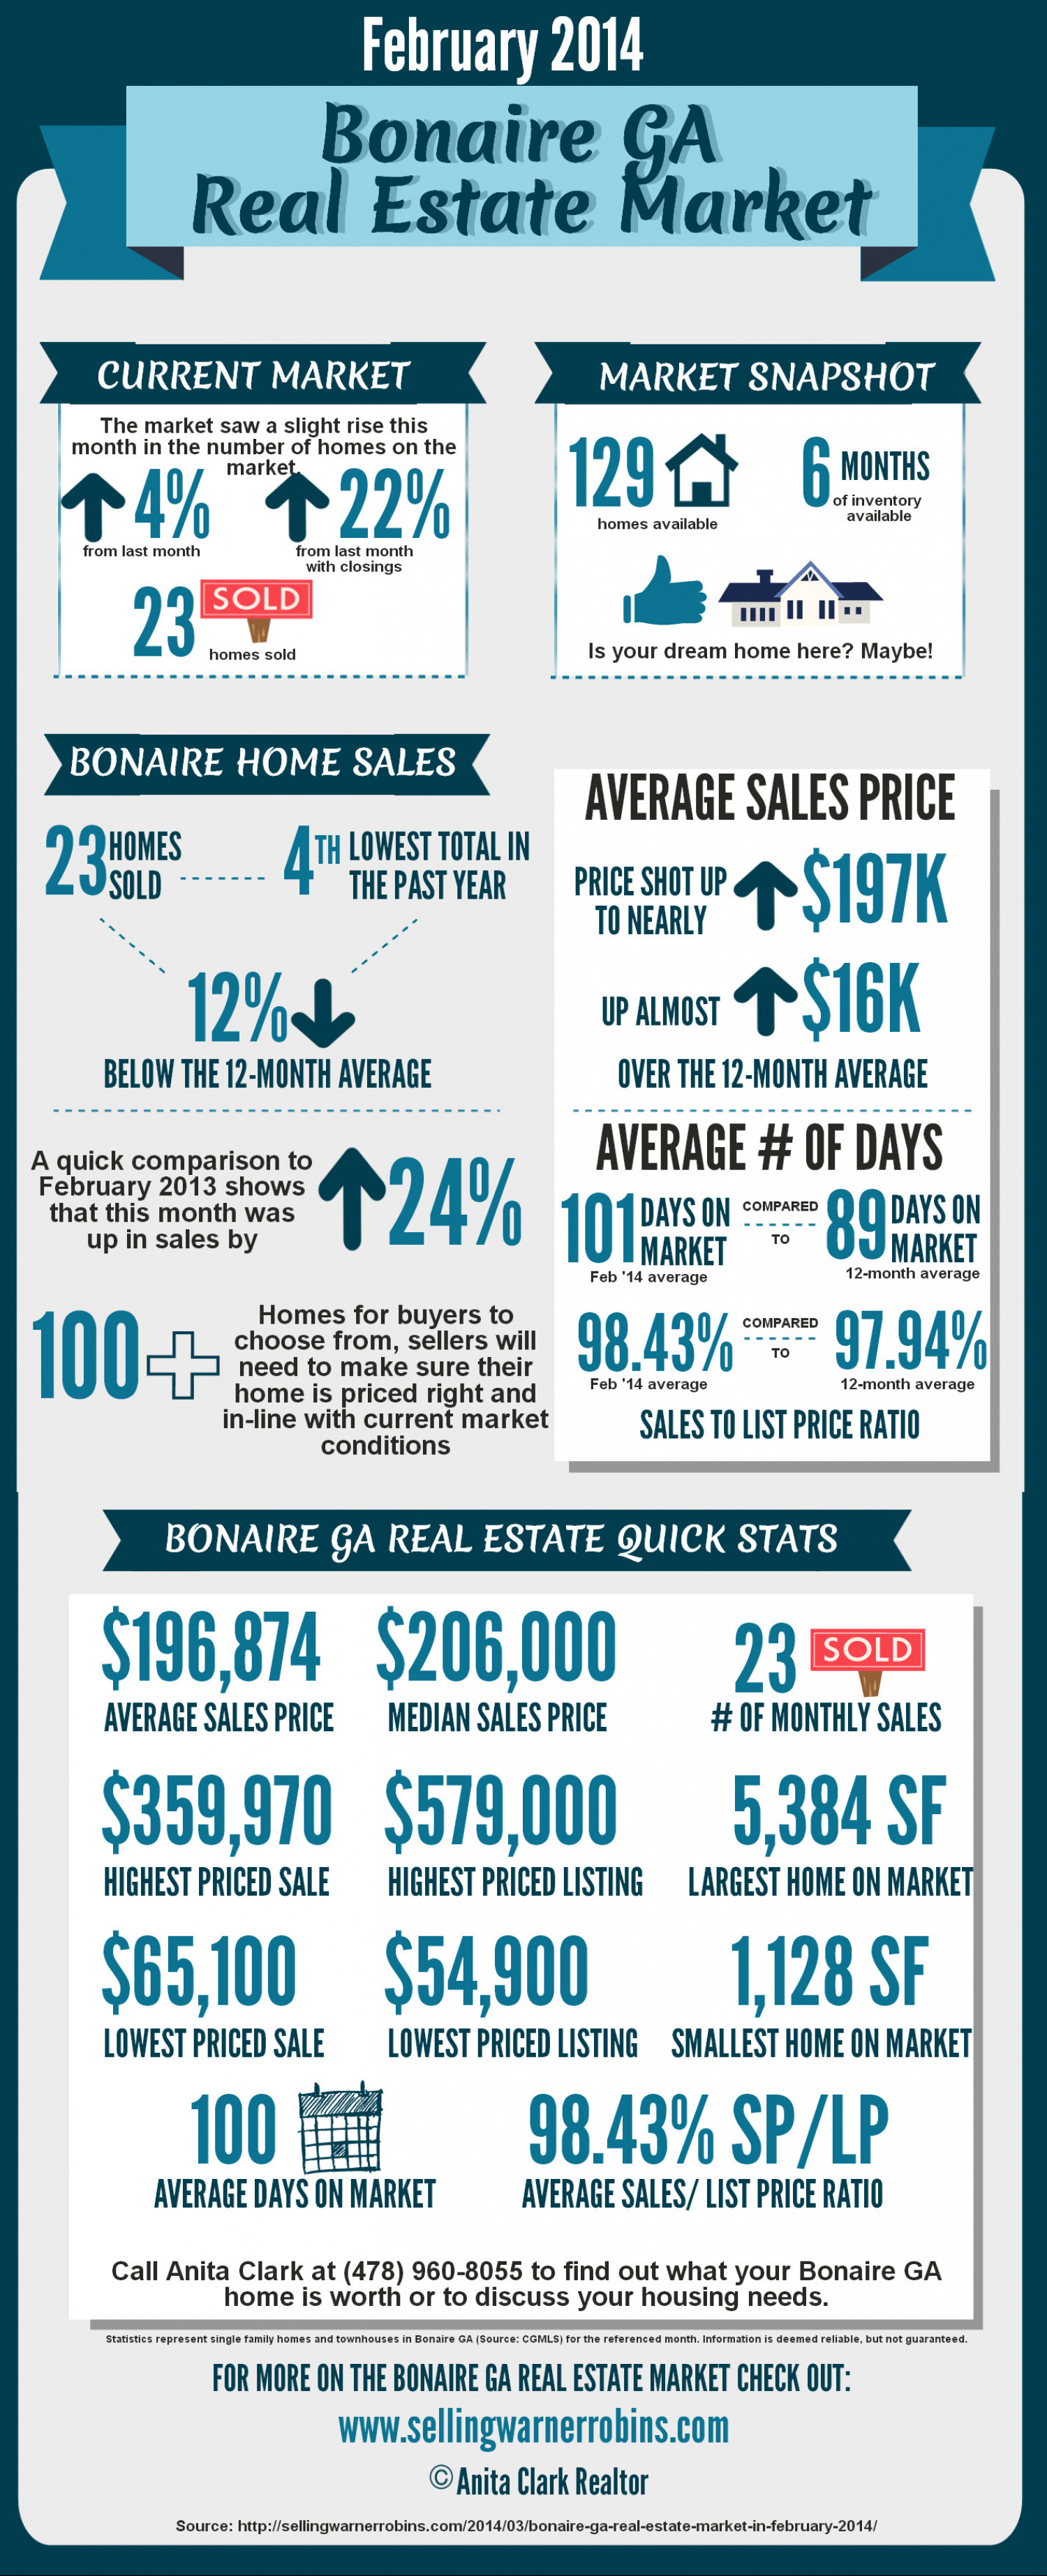 Bonaire GA Real Estate Market in February 2014 Infographic